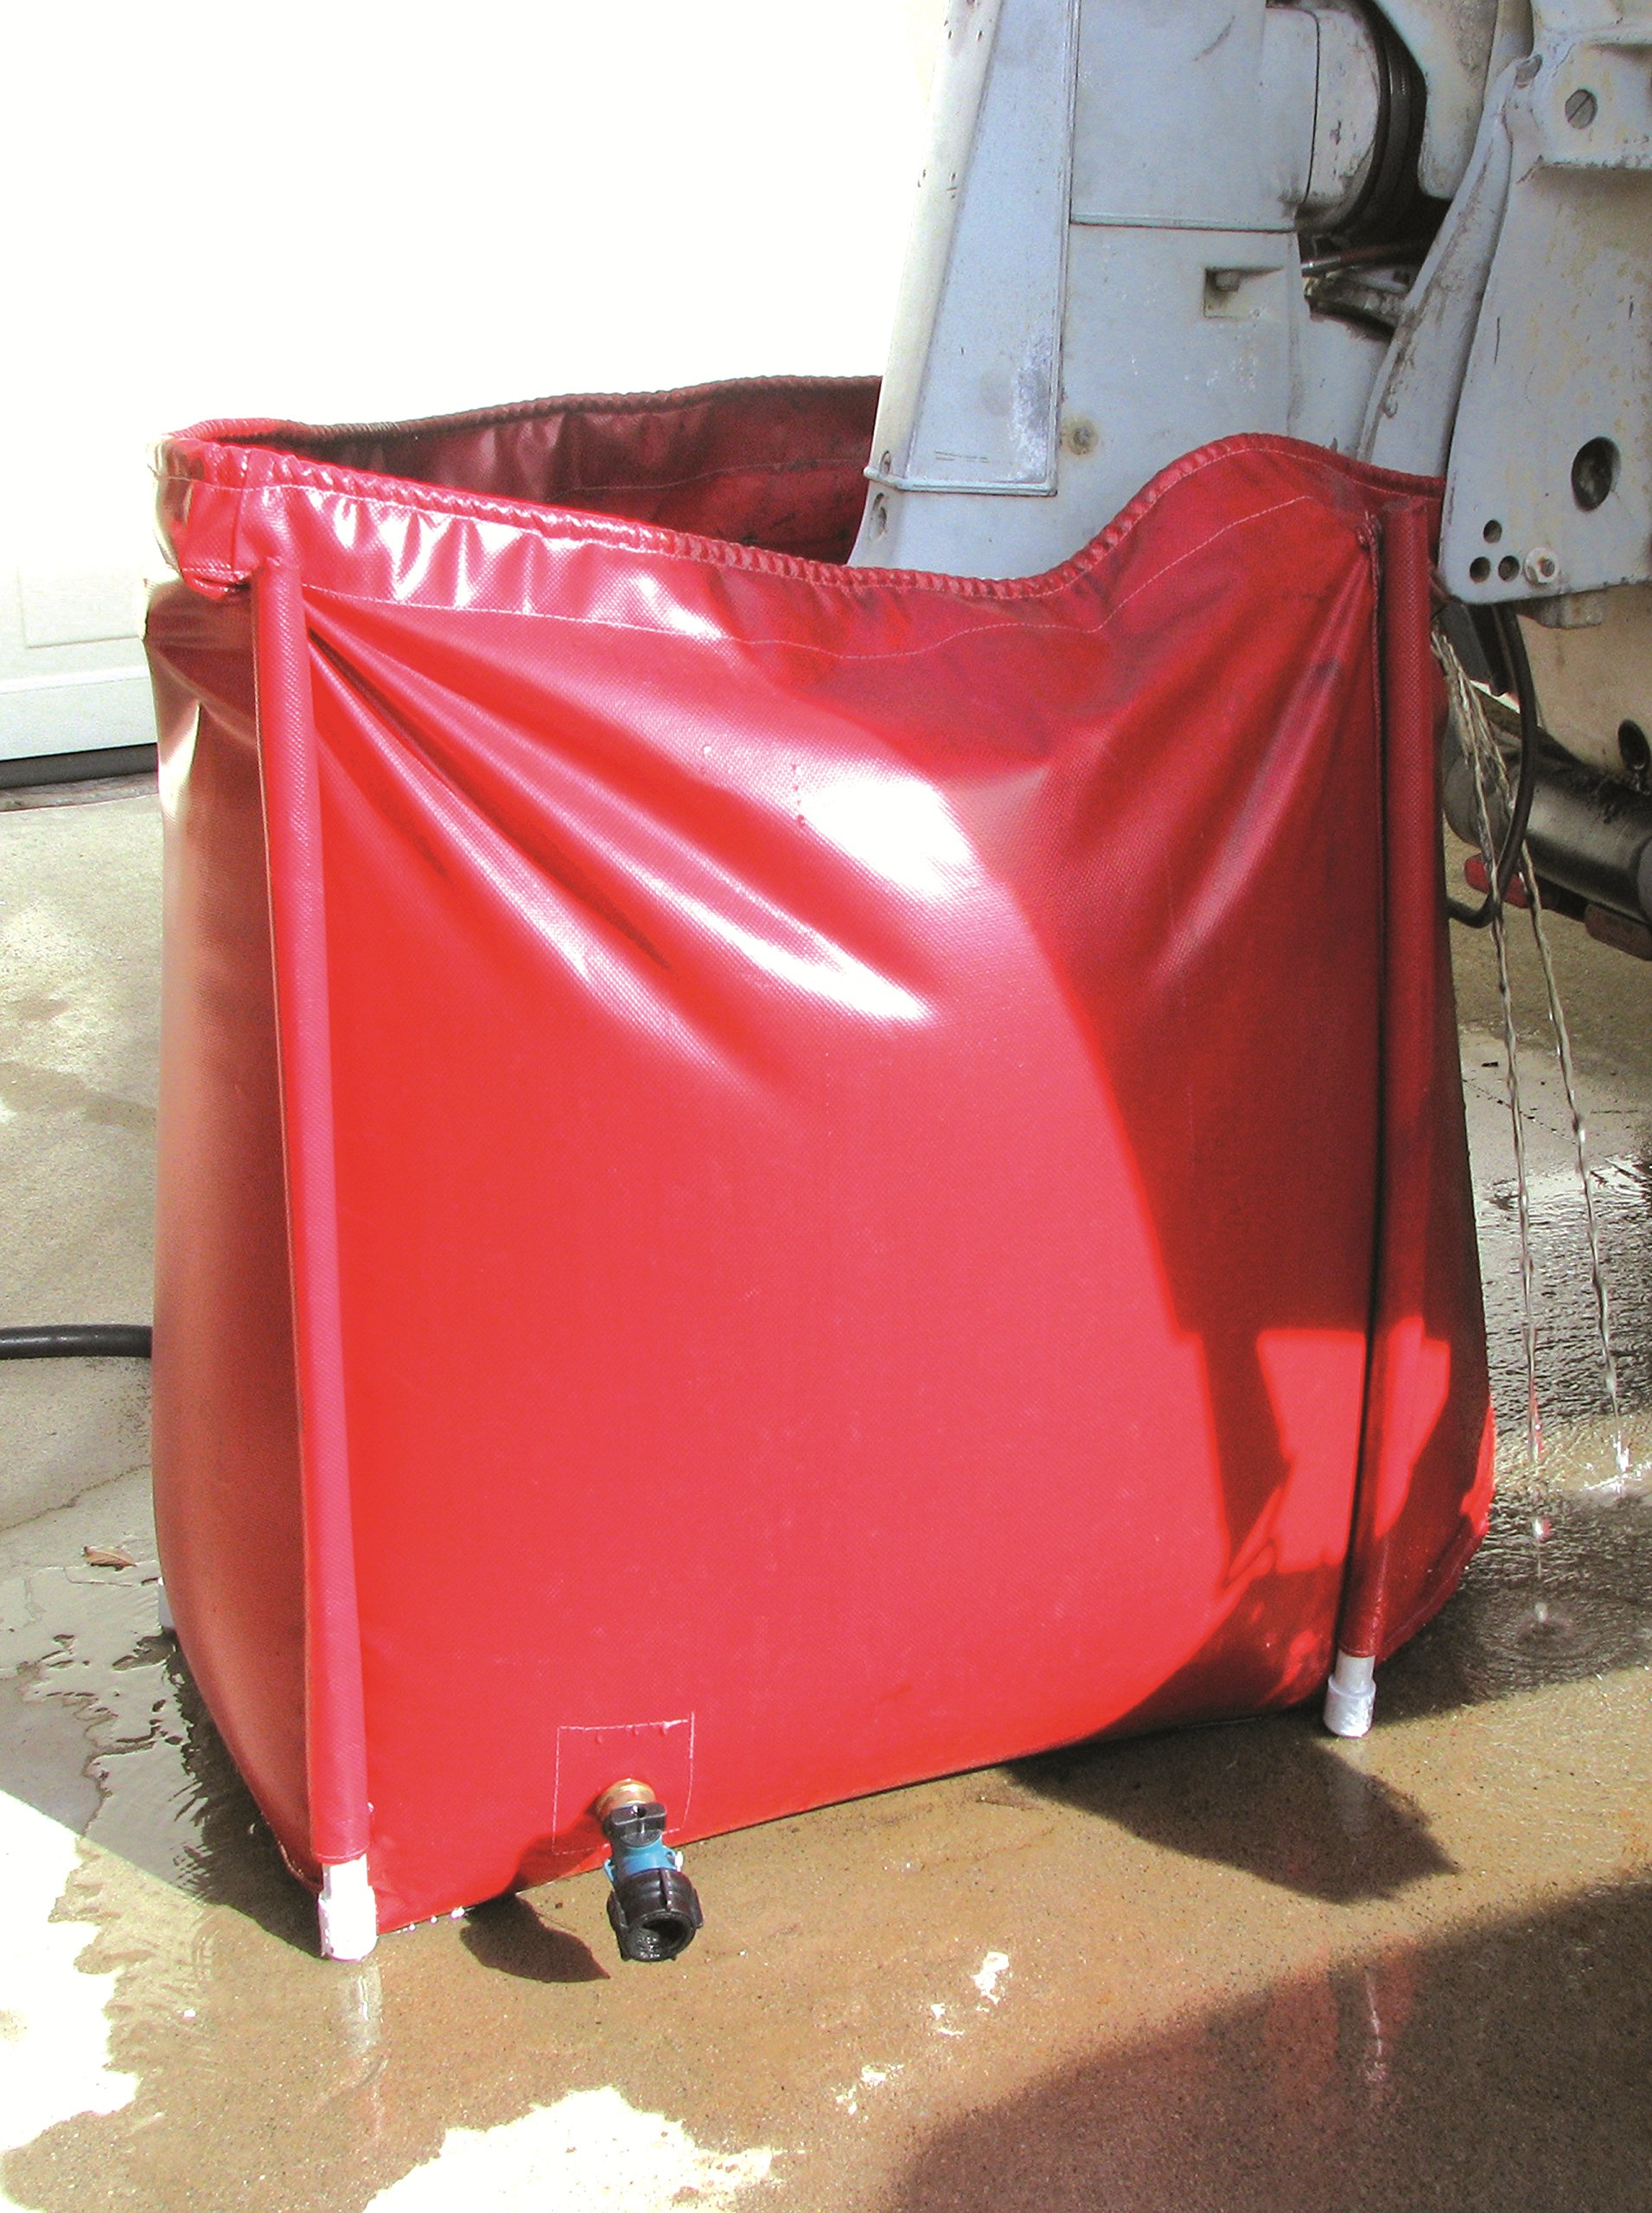 Outboard Motor Flushing Bag Model DPB3 for Outboard Engines up to 250 HP & Stern drives including Dual Prop & Service Test Tanks. Made In the USA.